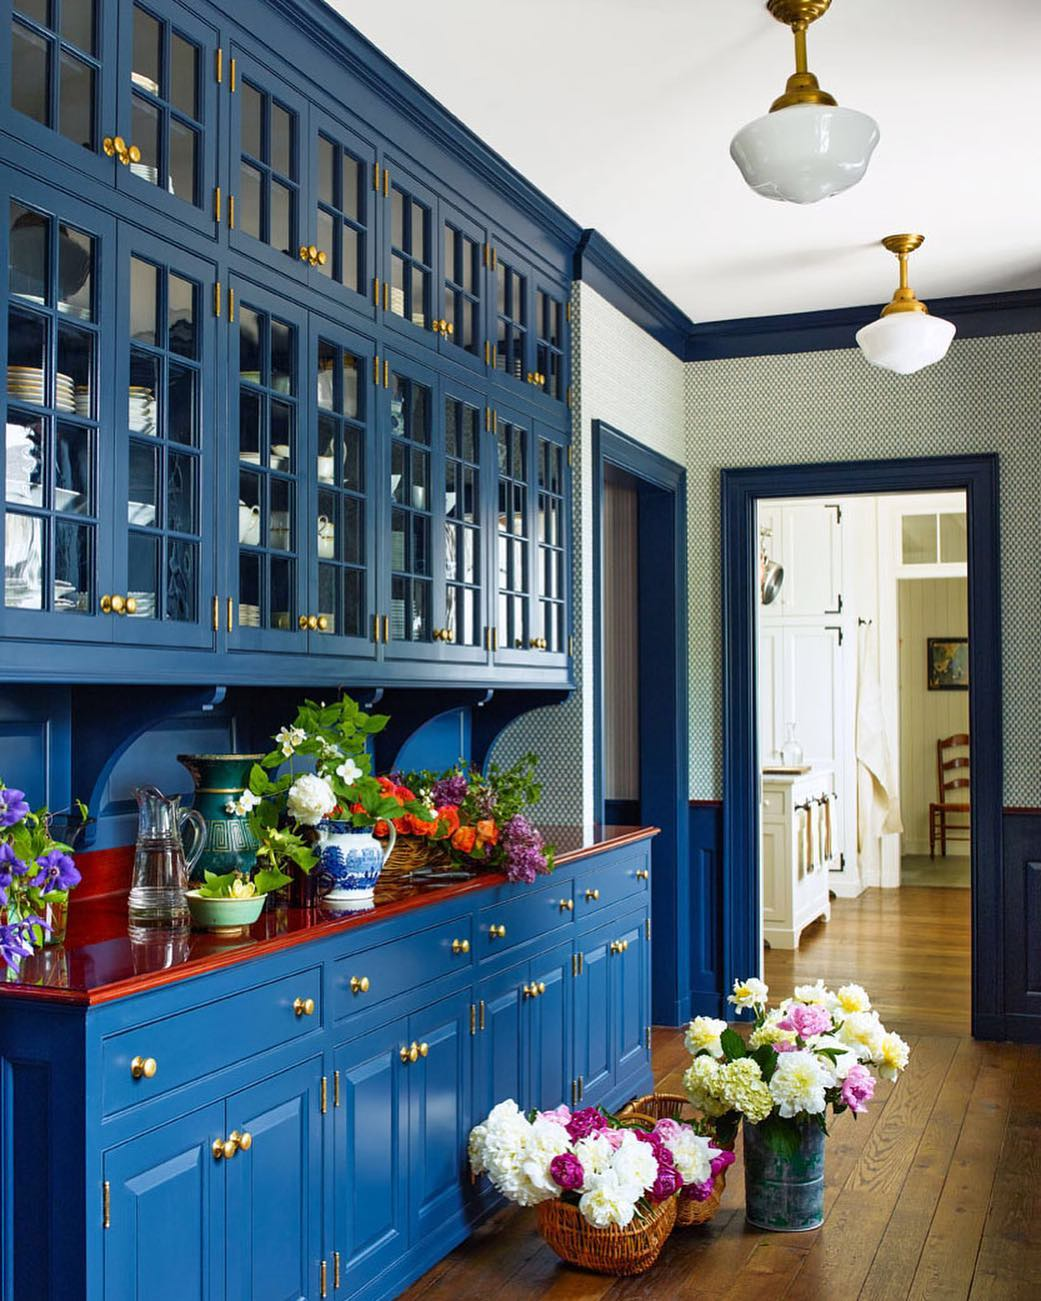 Blue painted butlers pantry interior decor.